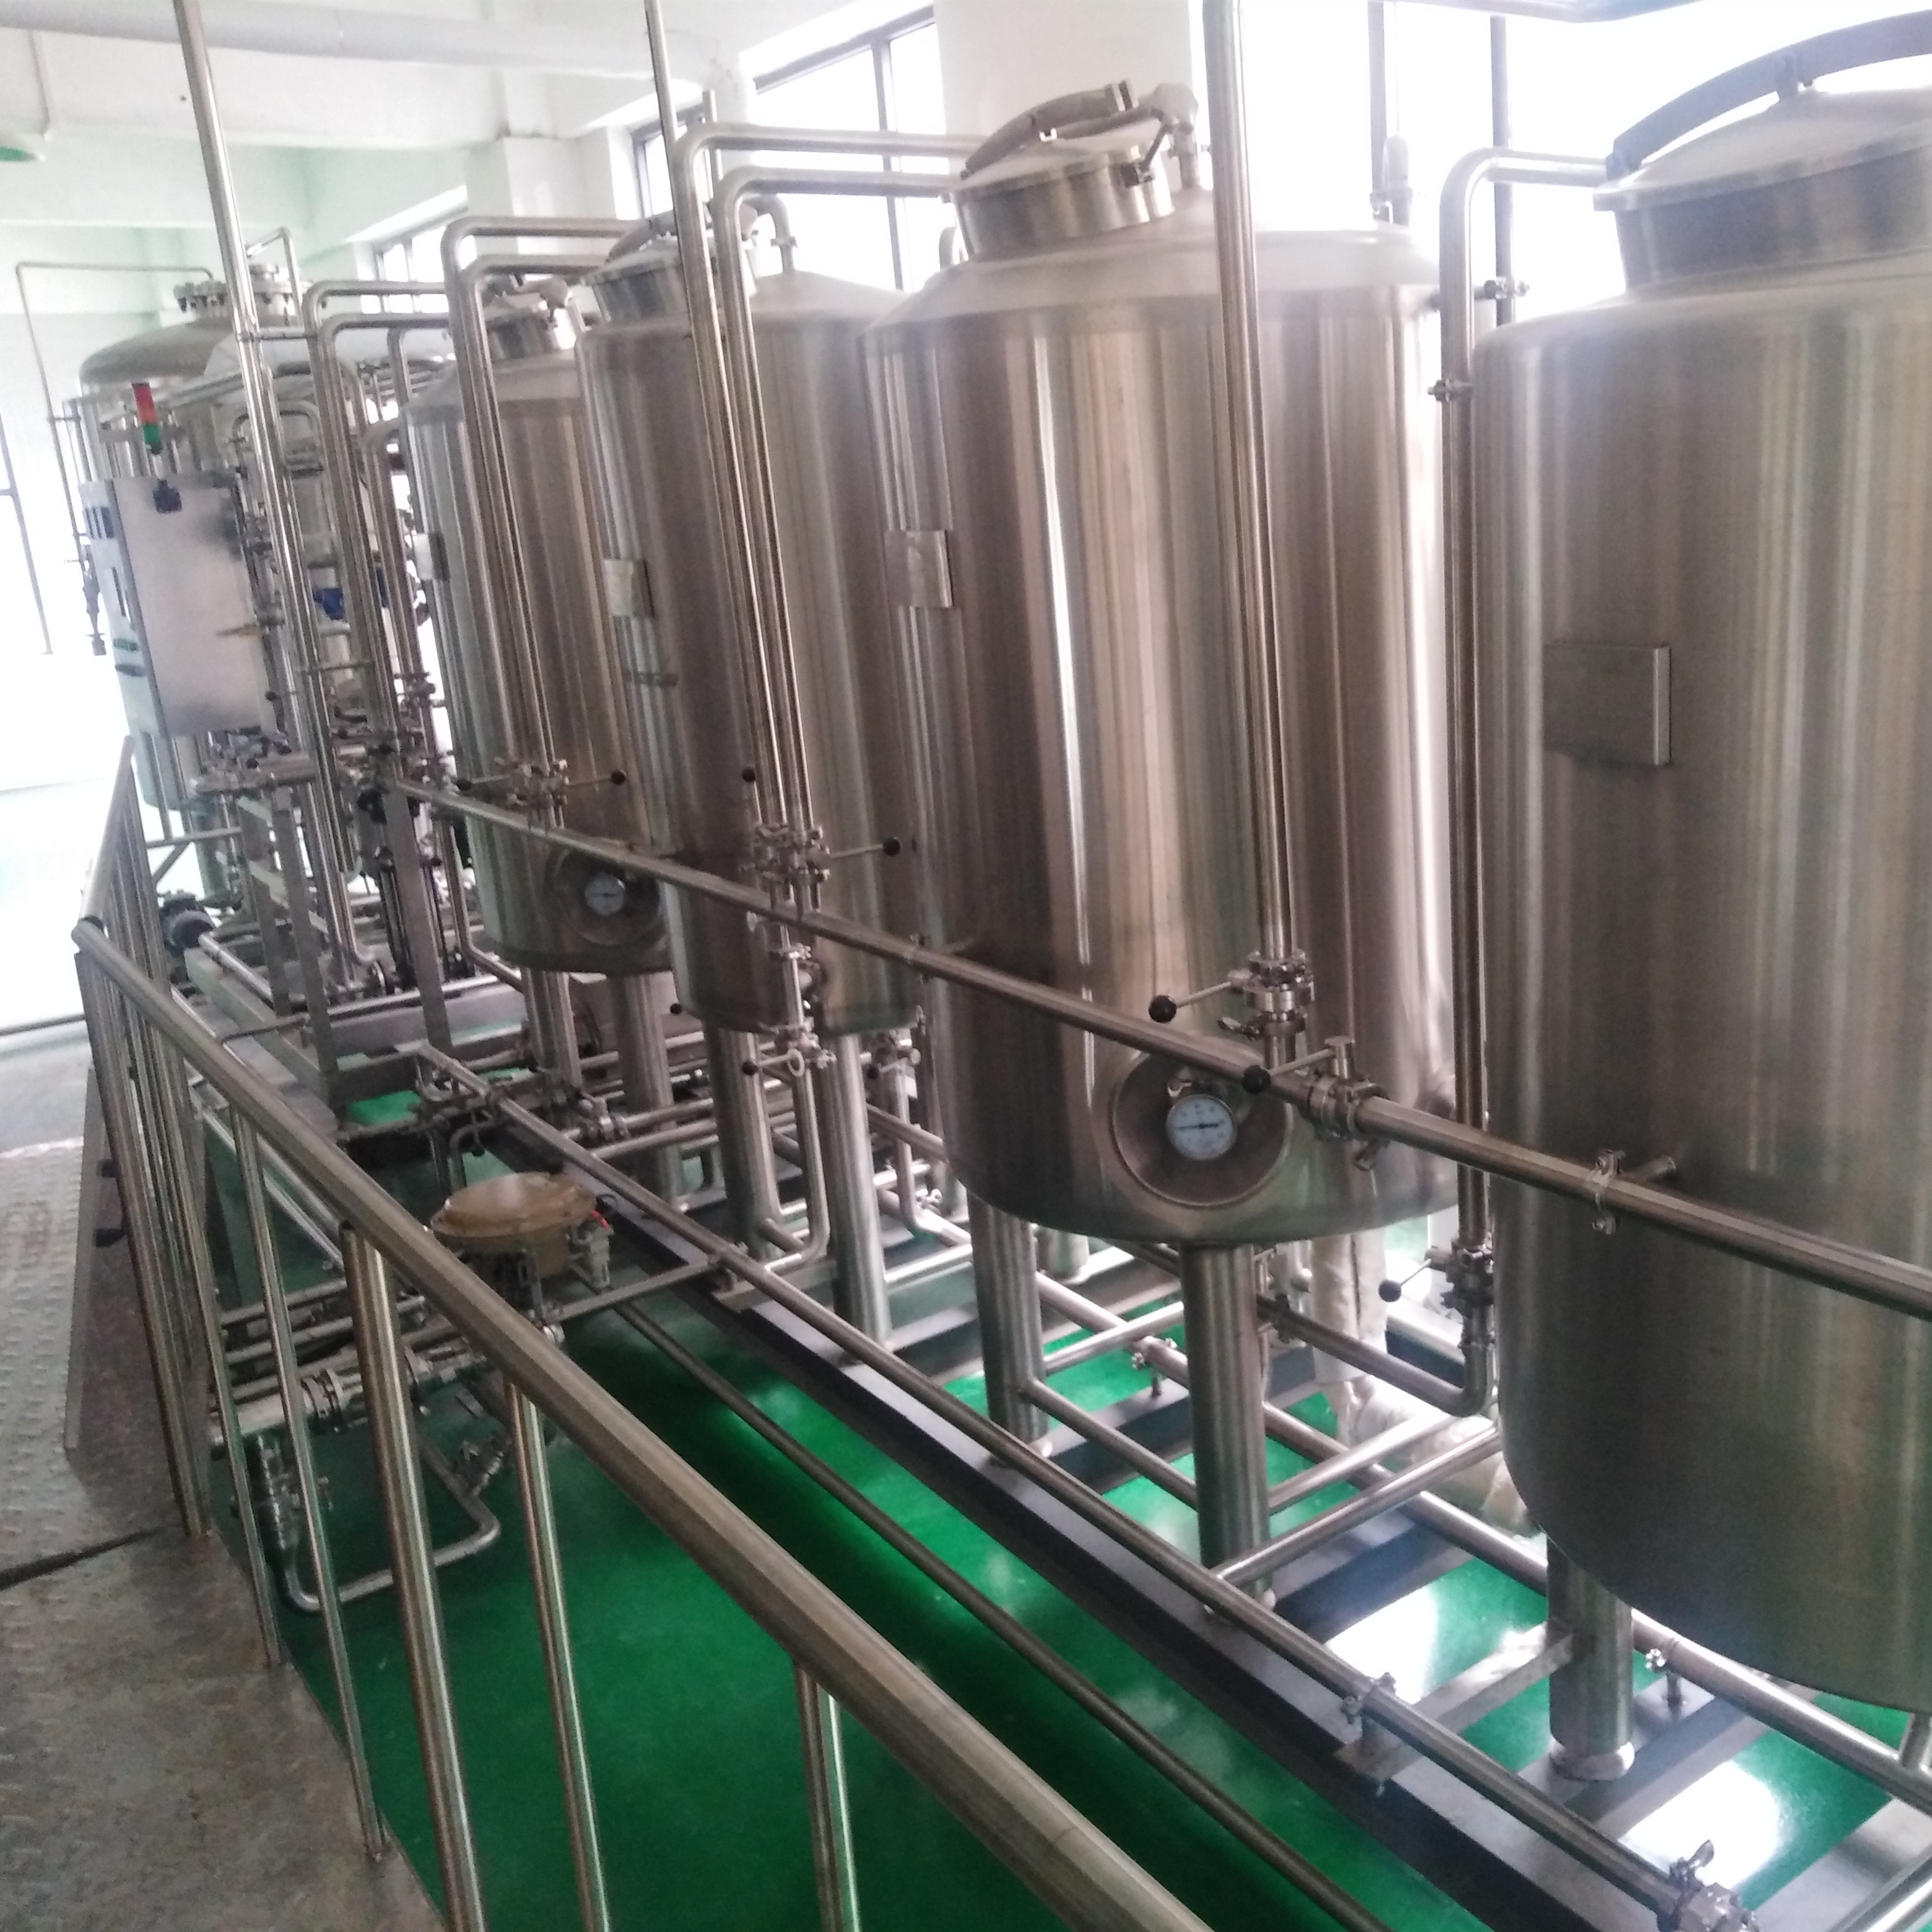 How to build your own brewery?